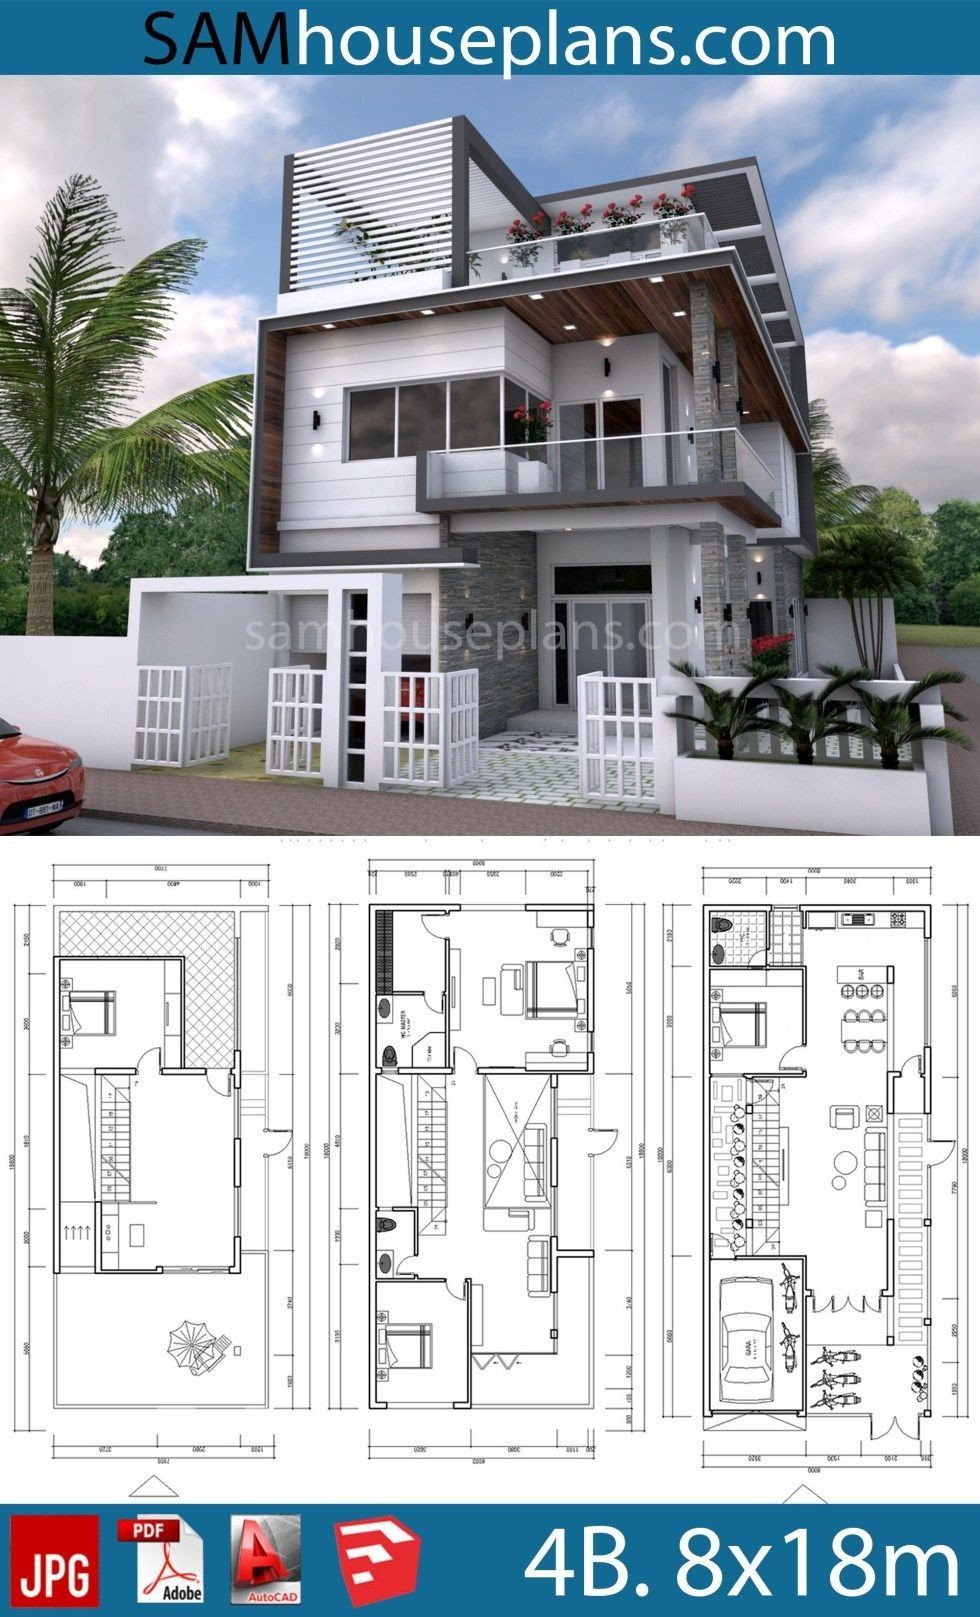 3 Storey Modern House Floor Plans House Plans 8x18m With 4 Bedrooms Architecture House 3 Storey House Design Model House Plan